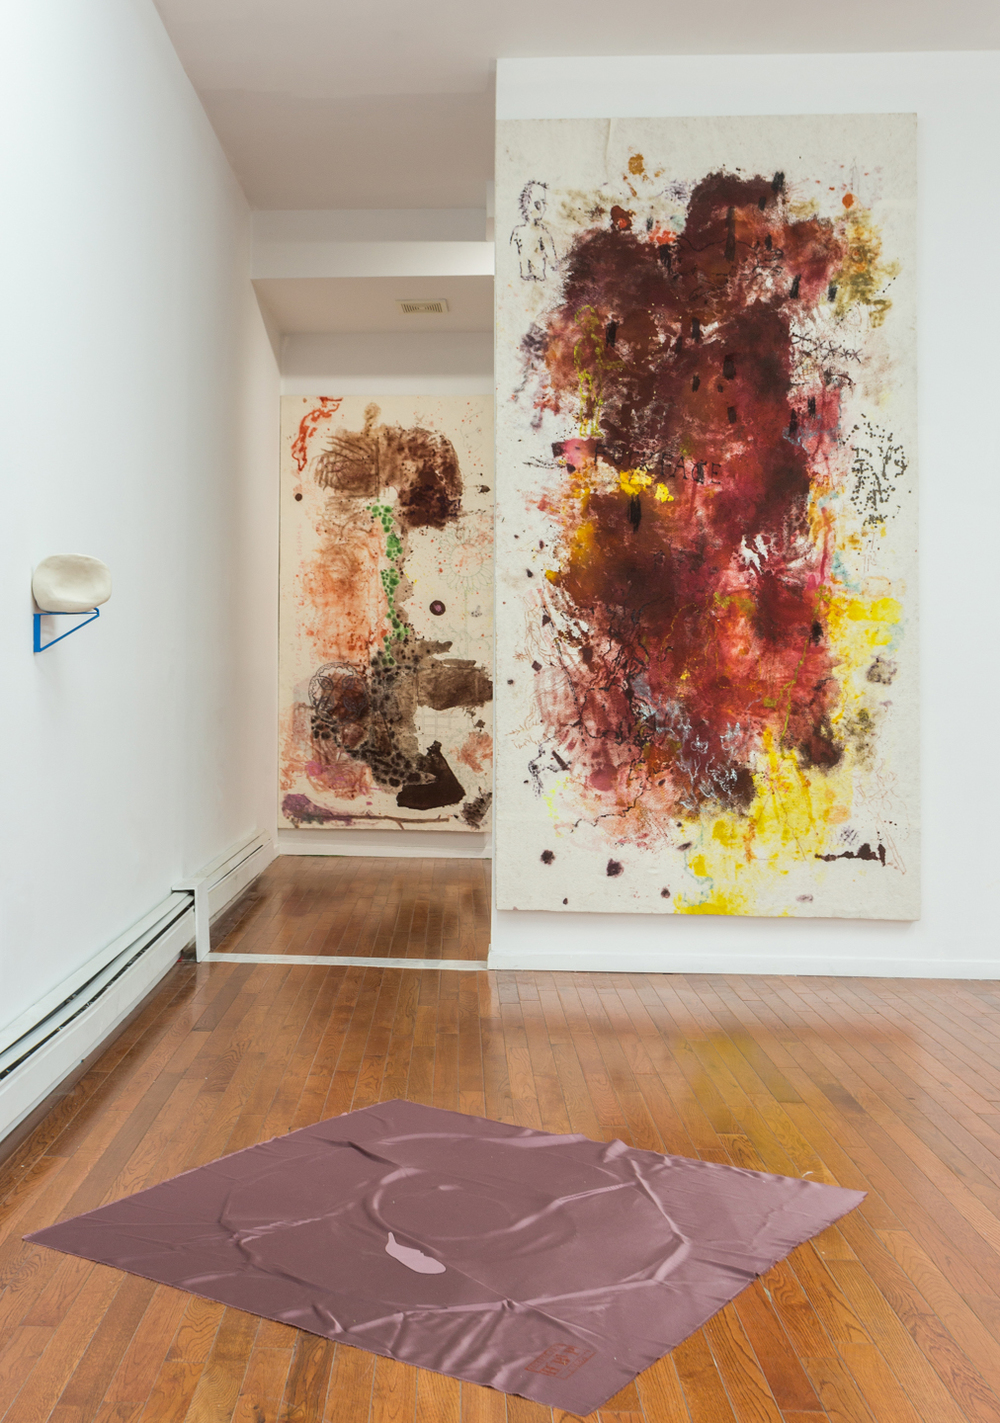 Wall (left): Genesis Belanger,  Hip-Jaw , 2015 Porcelain, steel, silicone, 9 x 8 x 10 inches  Floor: H. B. Peace,  Asunder Set #1 (Pink) , 2015 Tri-acetate, aluminum, straw, acrylic, 40 x 40 inches  Wall (right): Noah Furman,  Cut Me Open Watch Me Sprout Limbs and Dance,  2015 Dye, oil paint, highlighter, marker, wood stain, pastel, colored pencil on cotton bating on panel, 96 x 52 inches